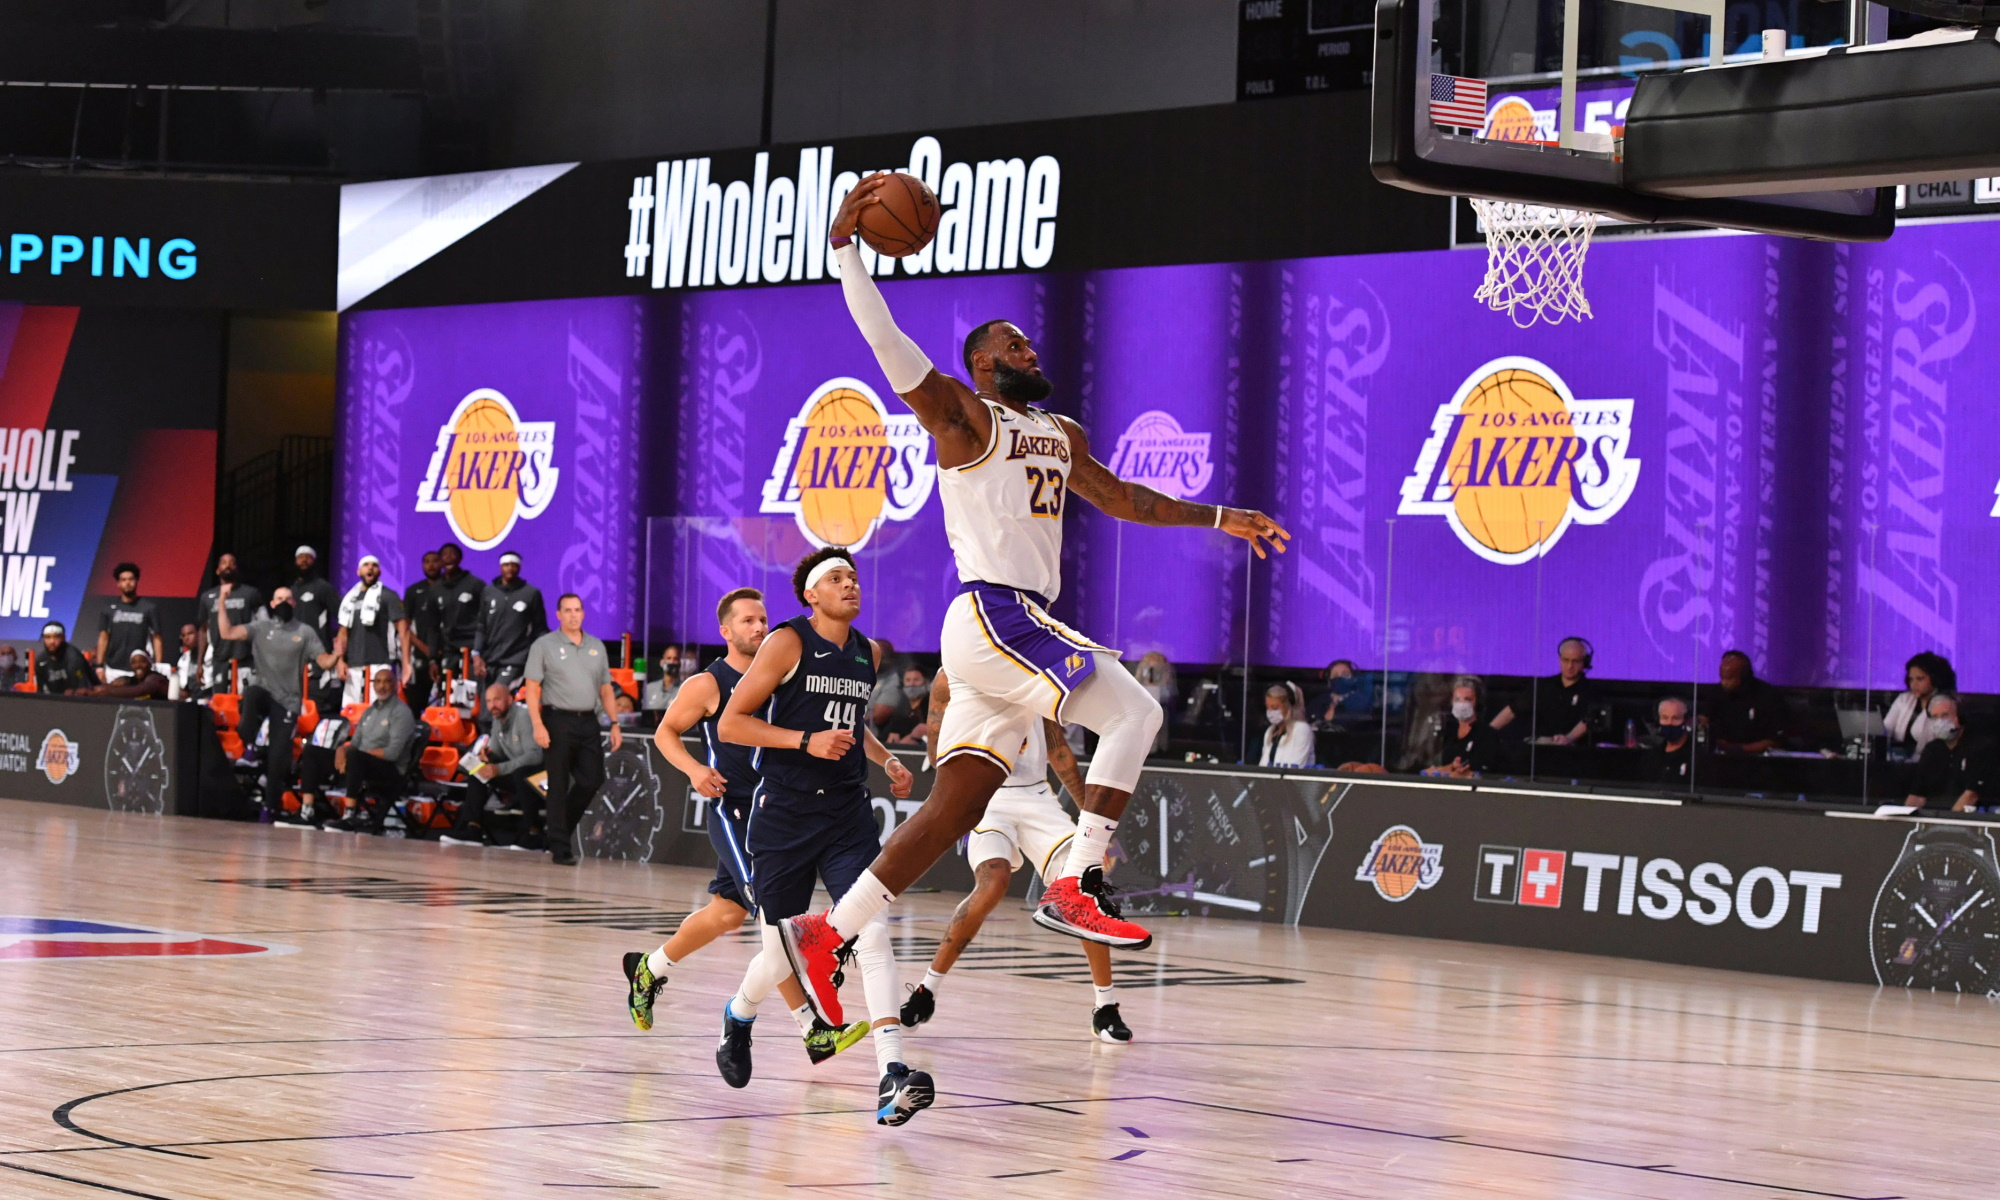 LeBron James #23 of the Los Angeles Lakers dunks the ball against the Dallas Mavericks on July 23, 2020 at the Visa Athletic Center at ESPN Wide World of Sports Complex in Orlando, Florida.